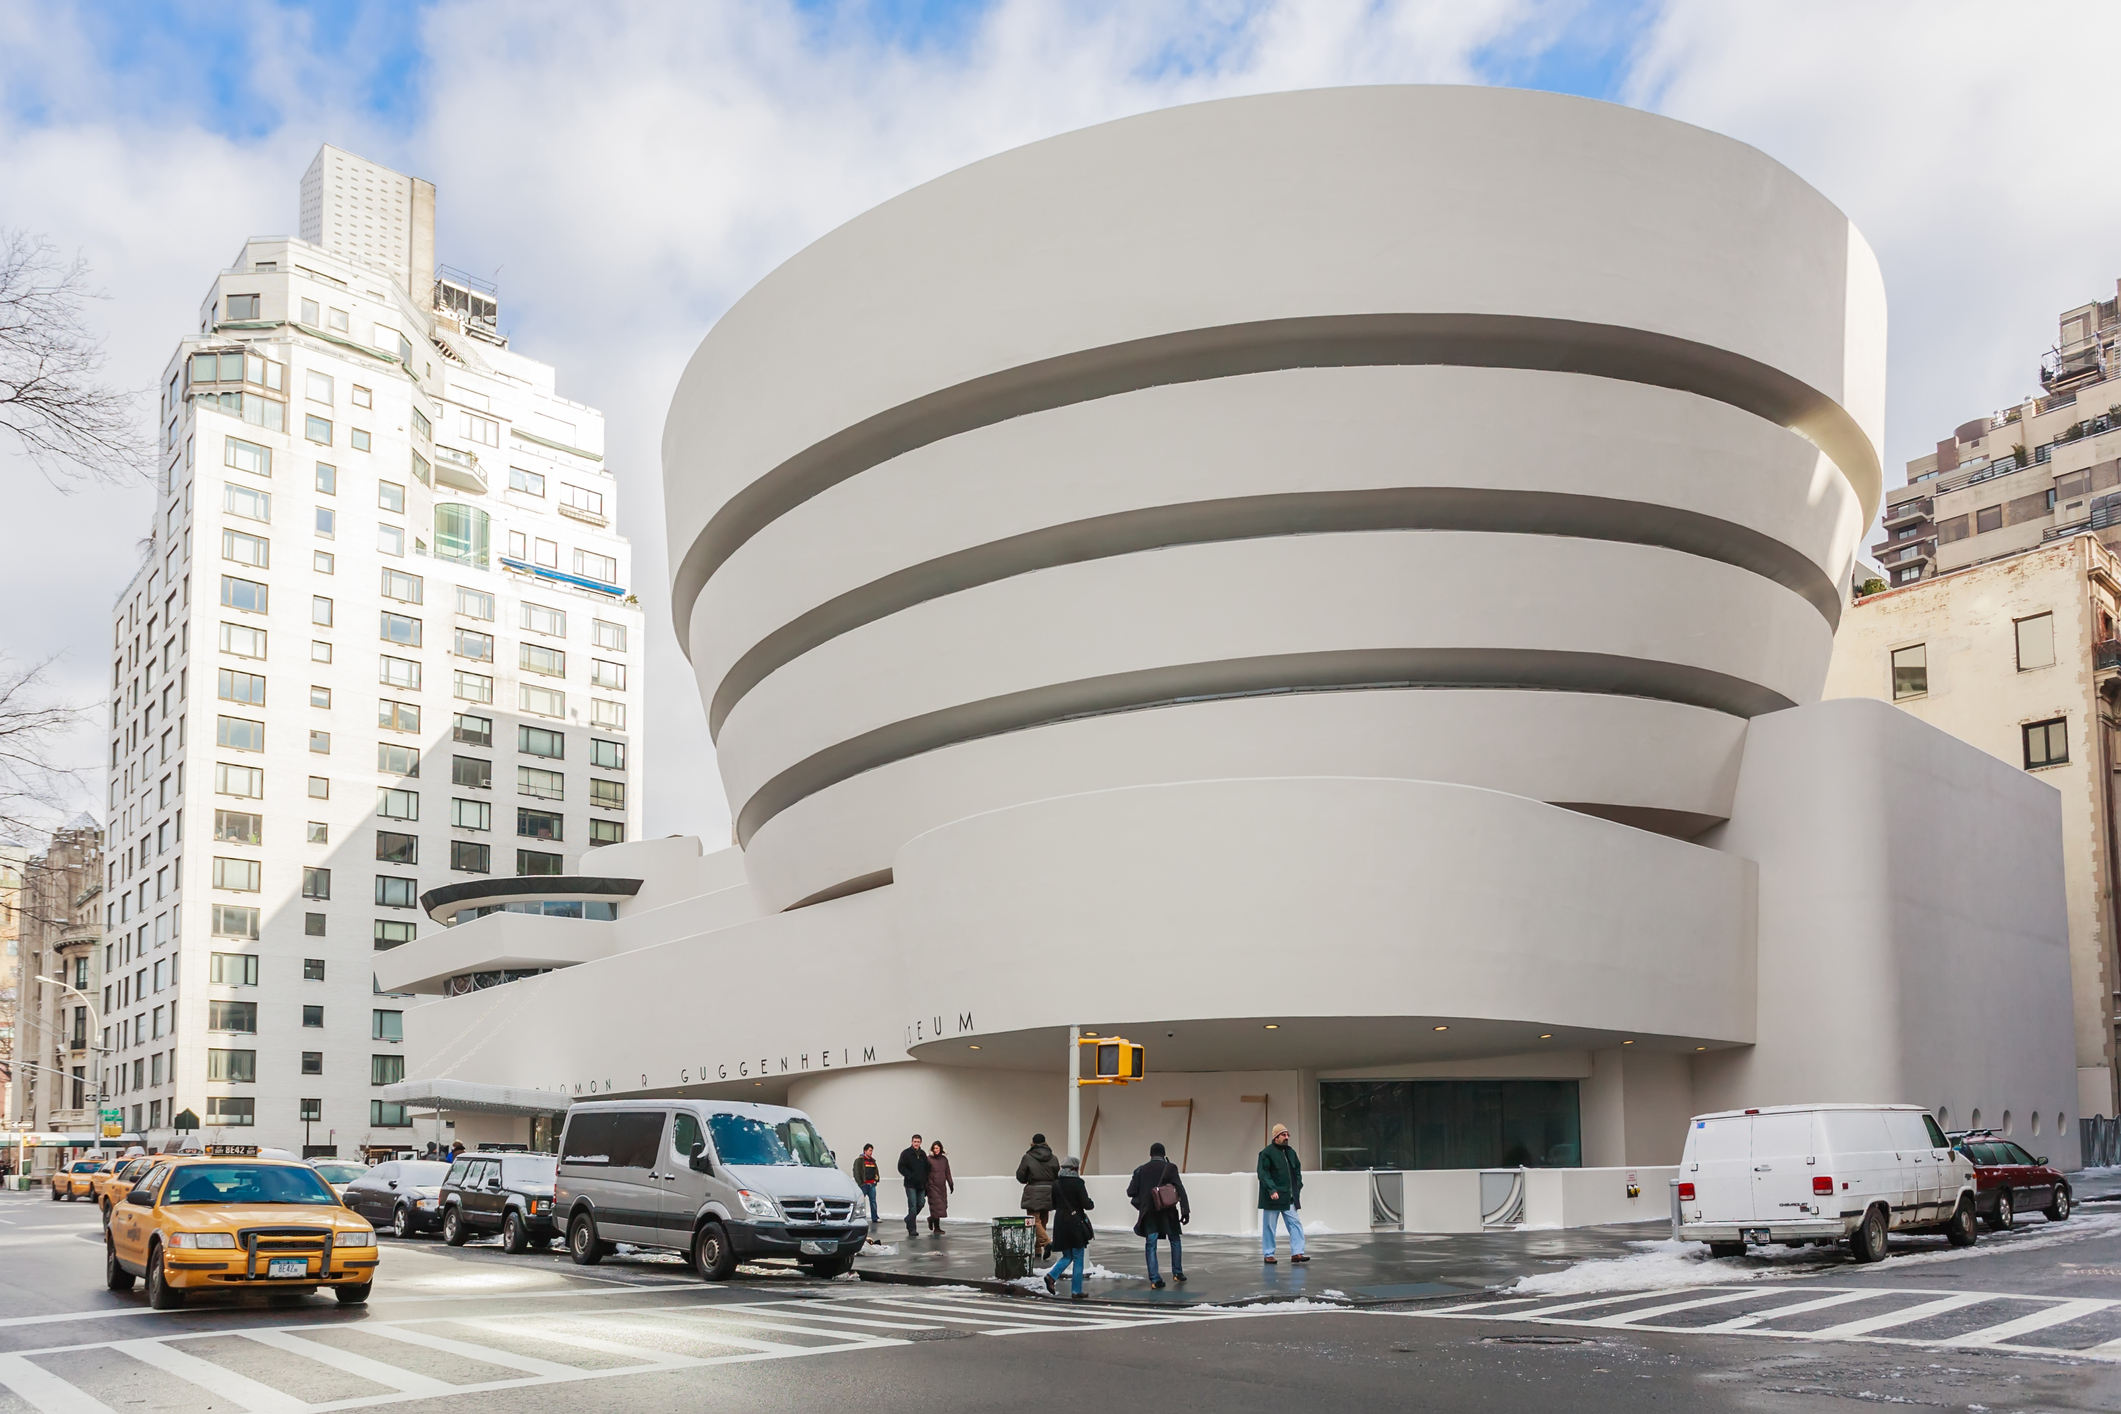 The Solomon R. Guggenheim Museum of modern and contemporary art. Designed by Frank Lloyd Wright